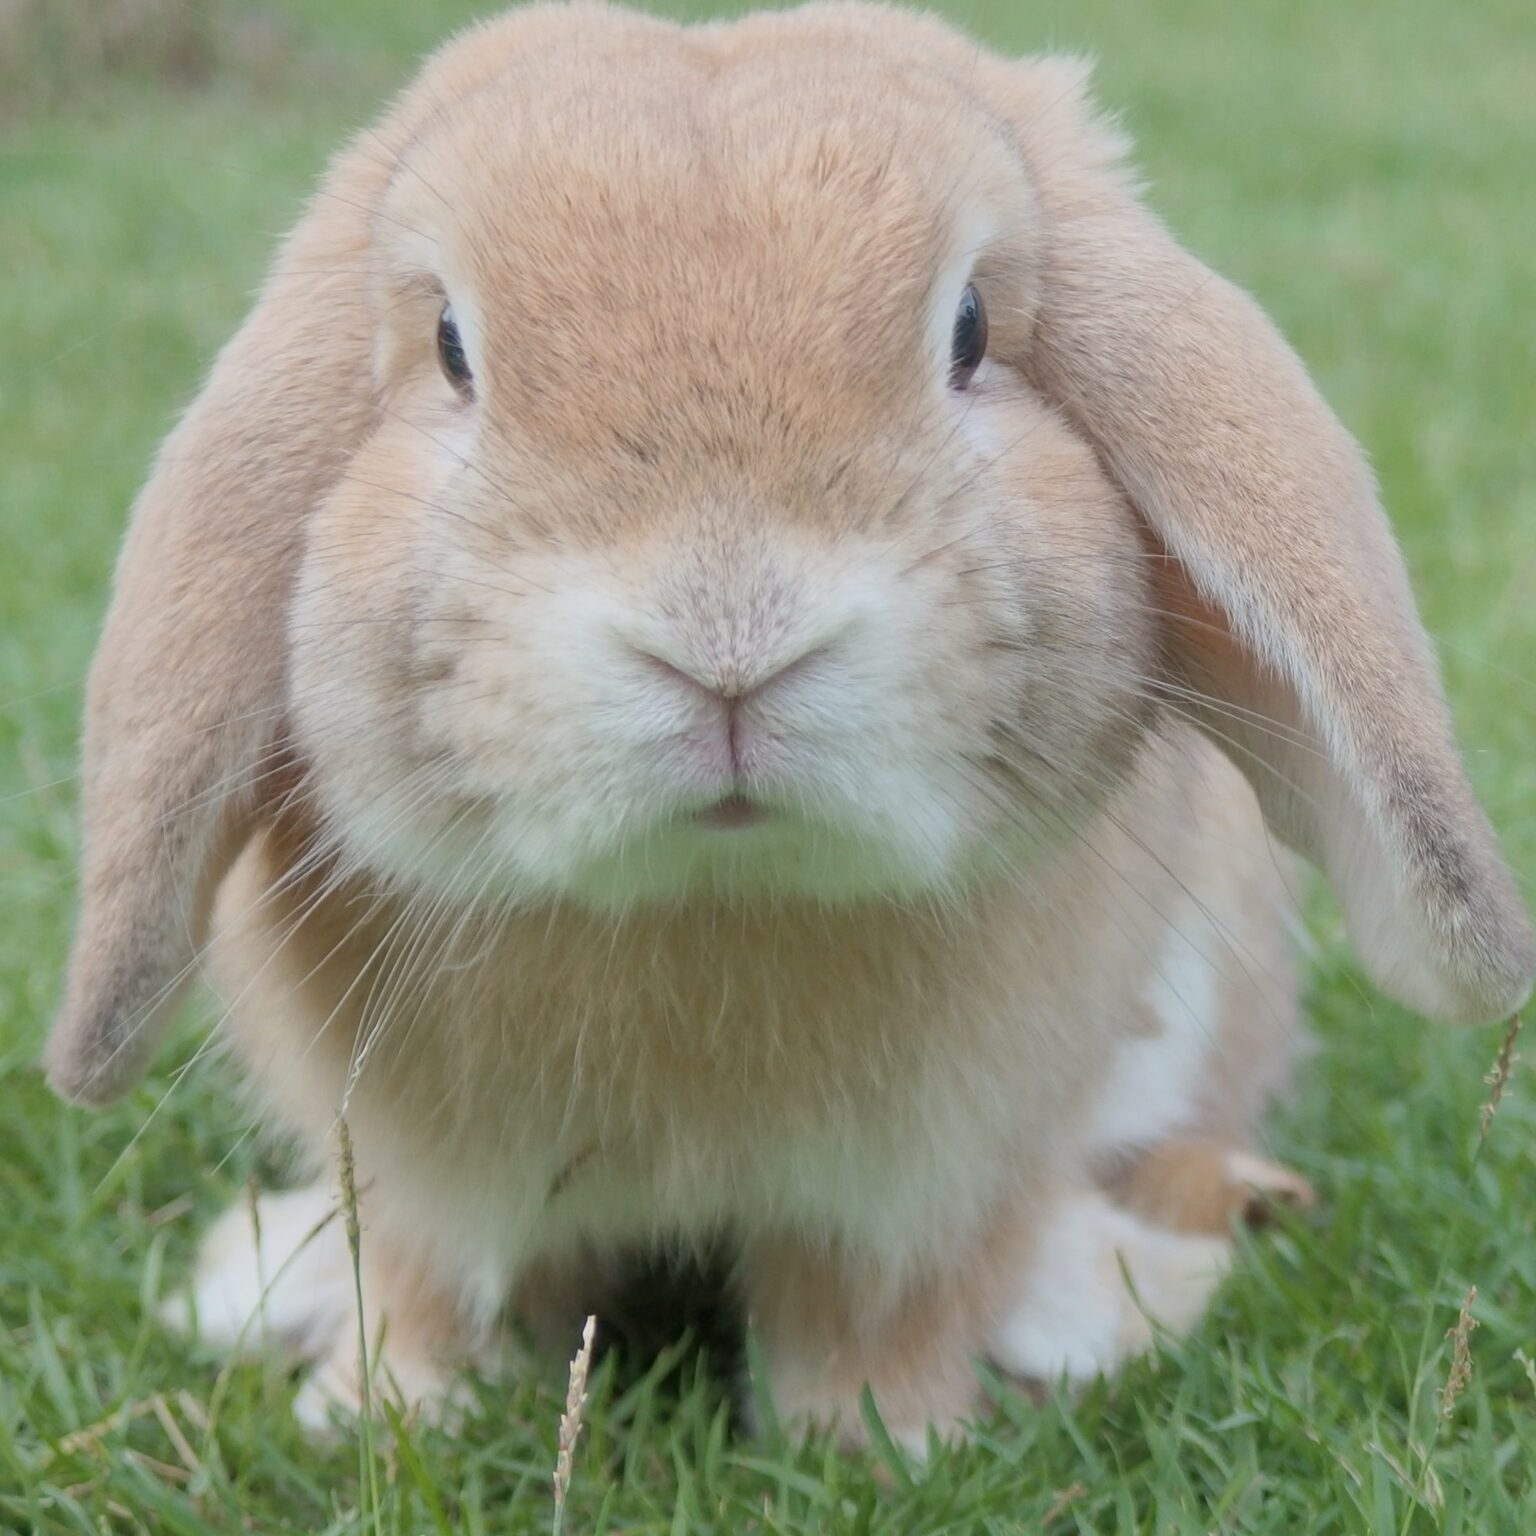 close up photo of a bunny